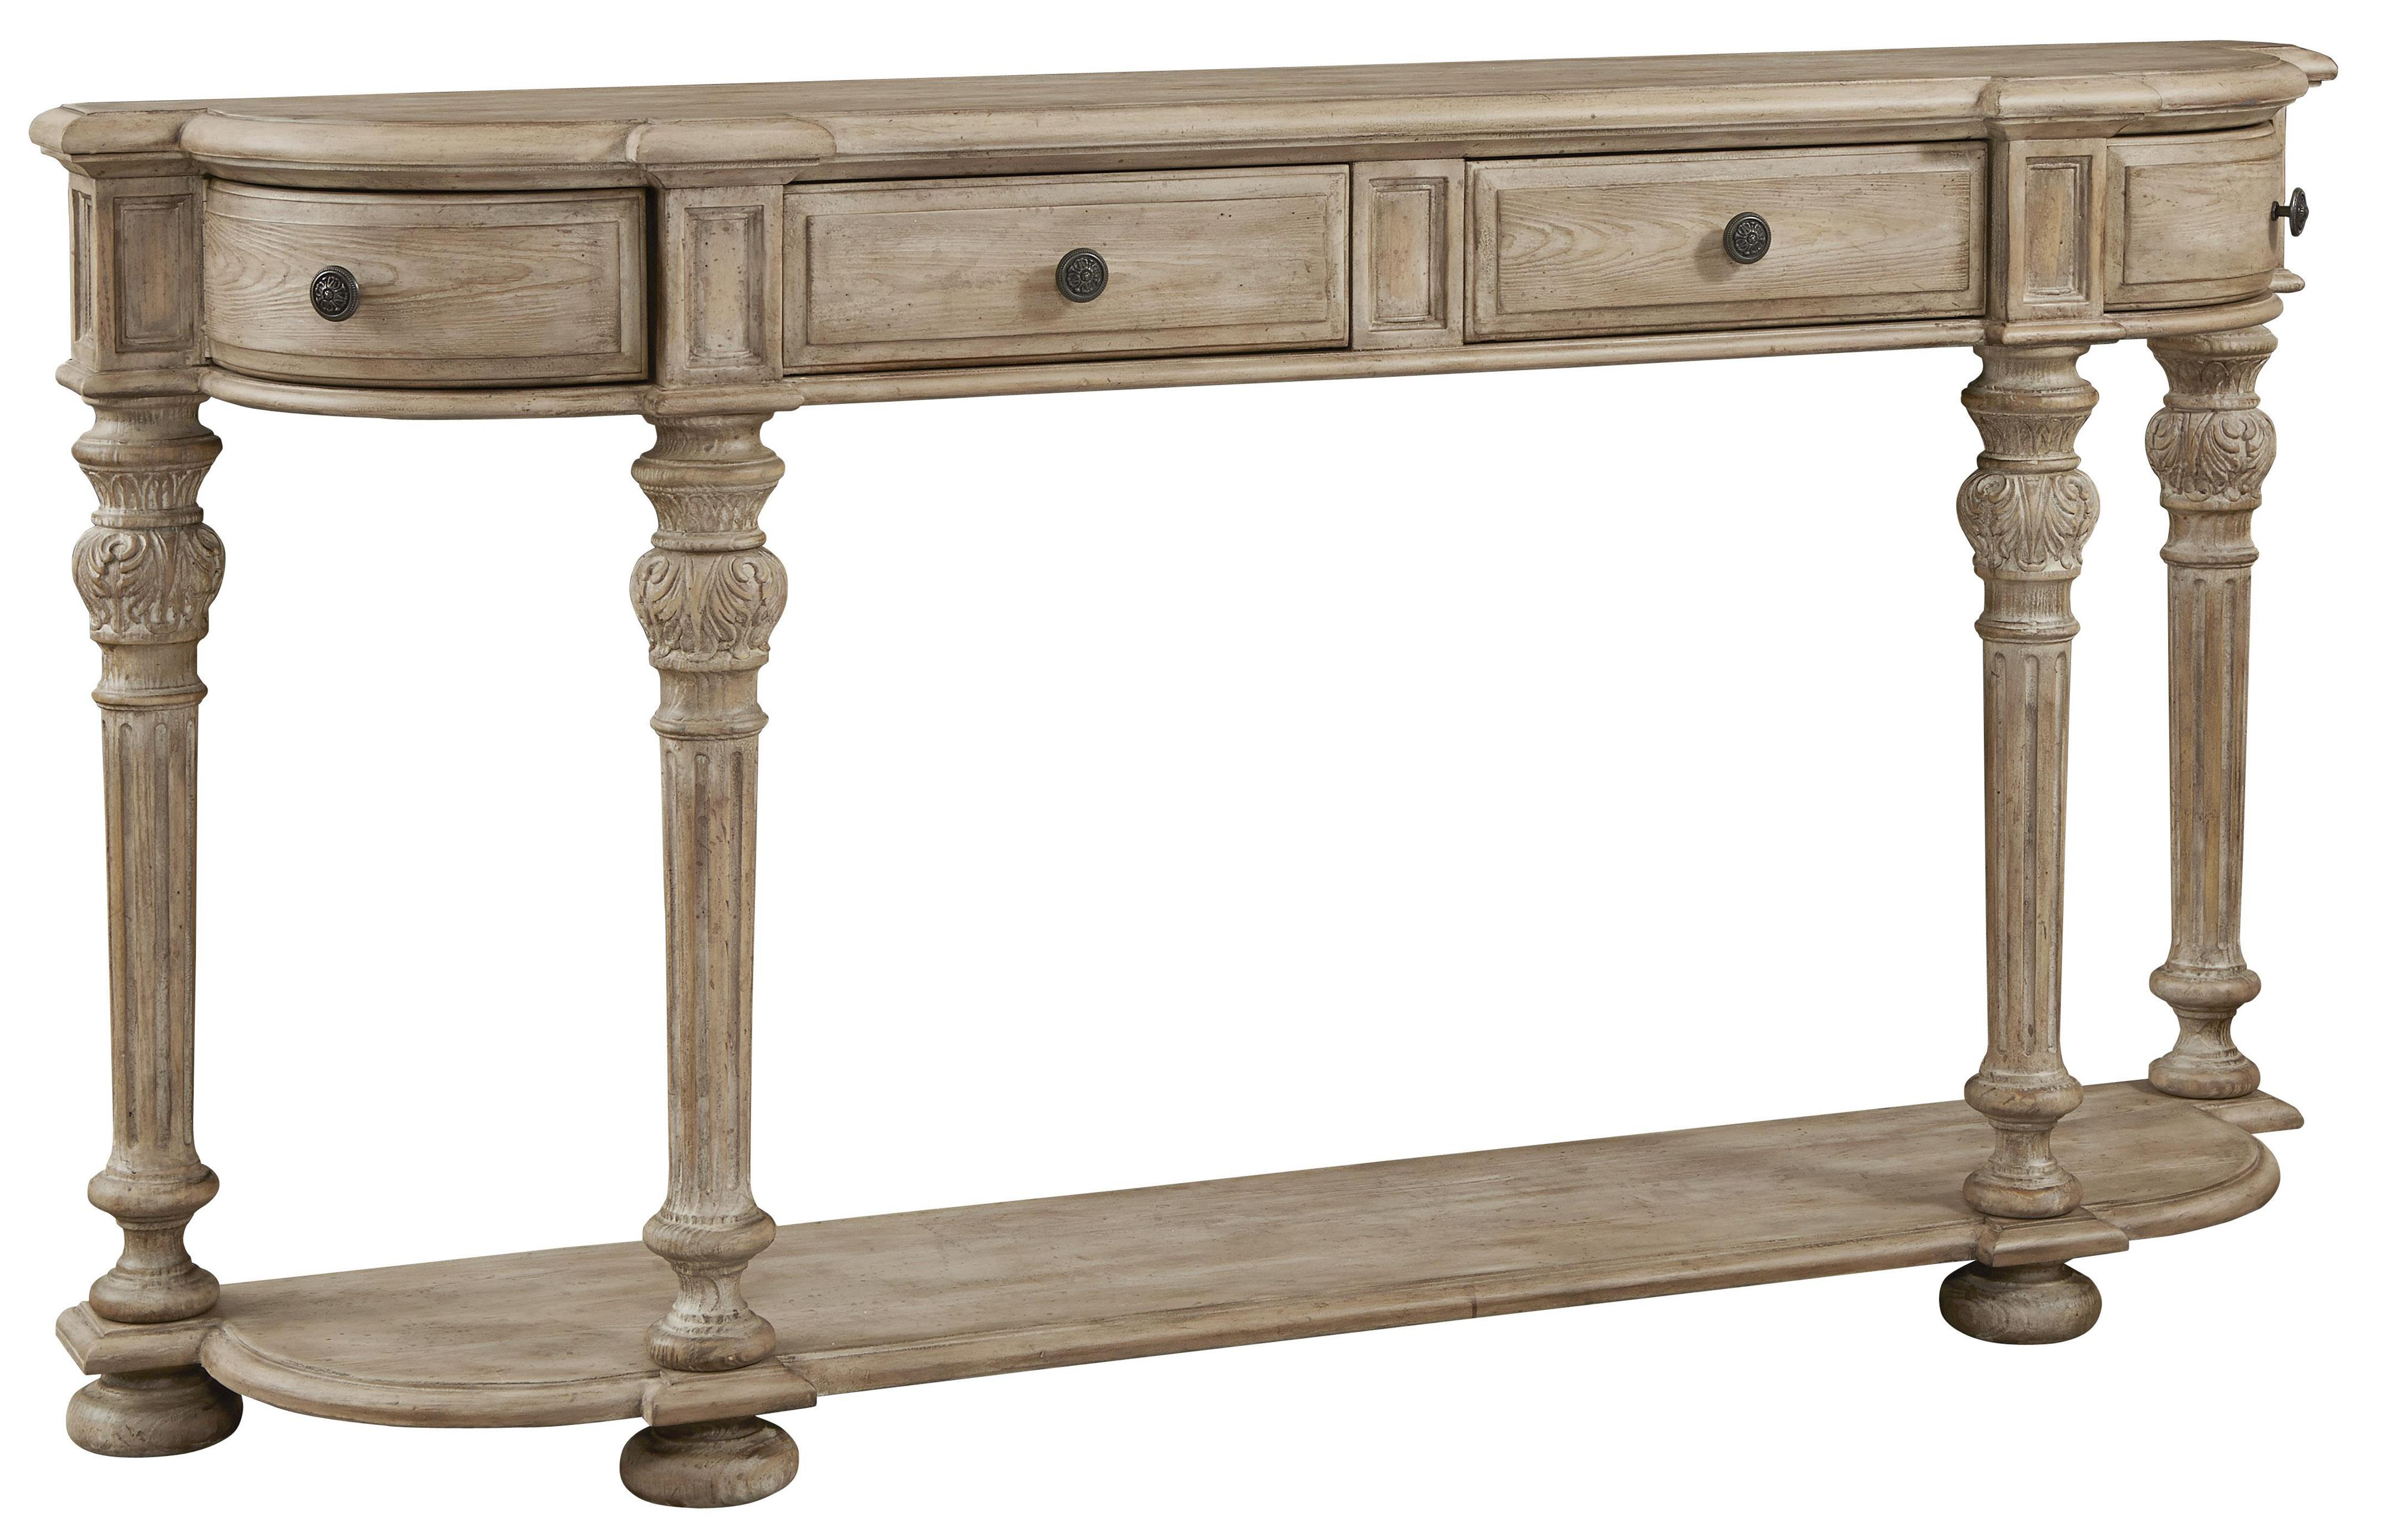 Pulaski Furniture Accents Console Table - Item Number: 766117